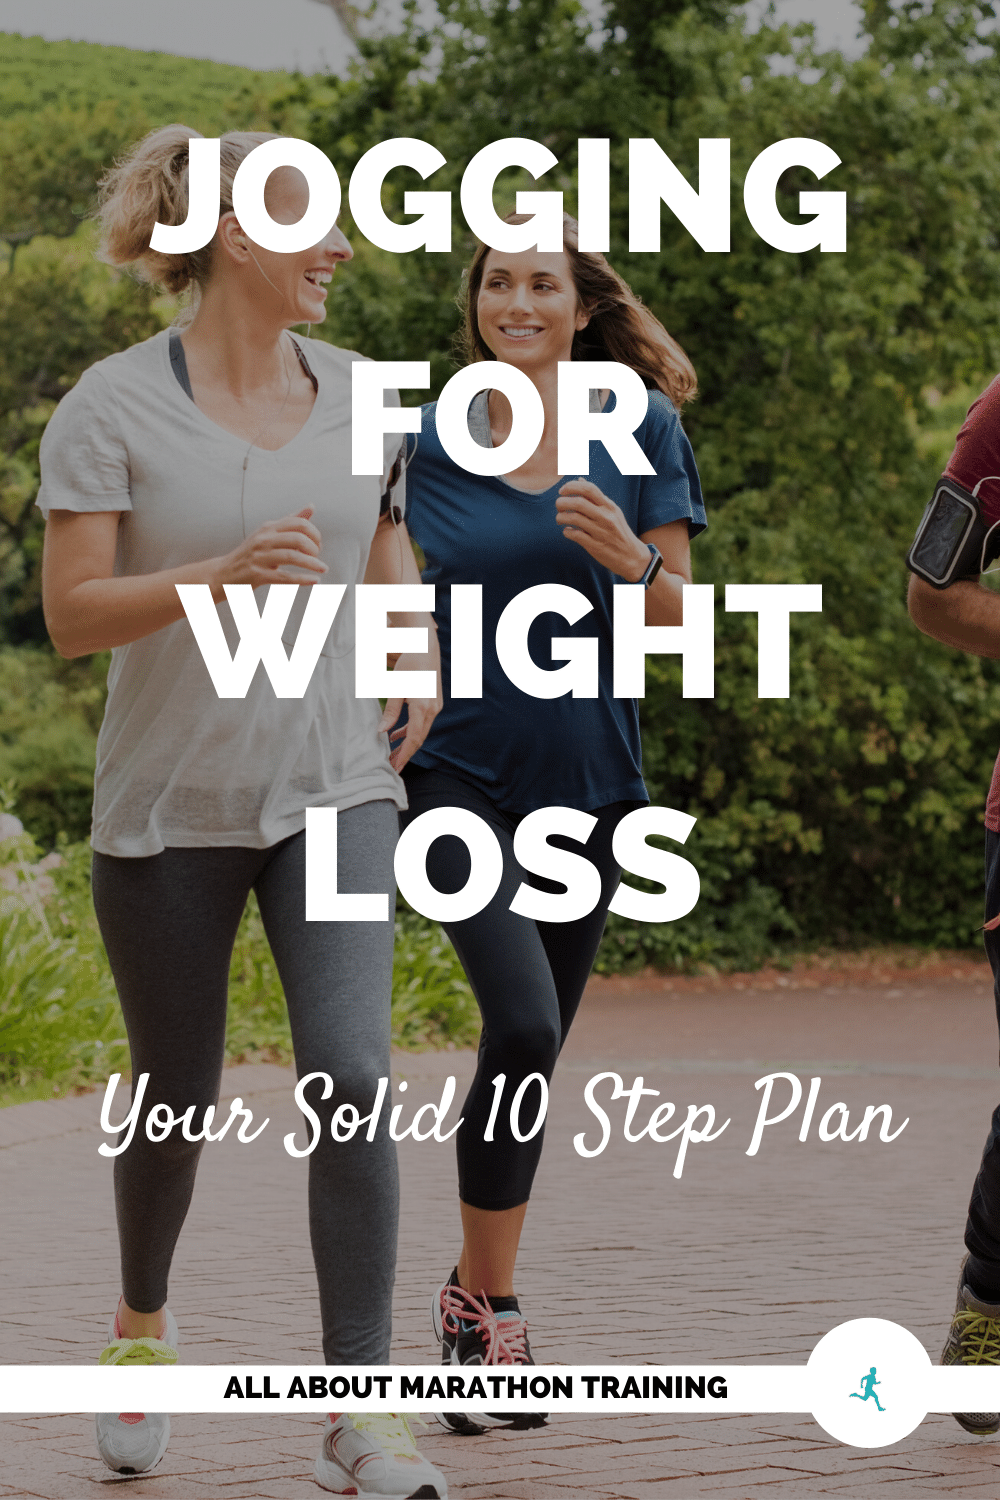 Jogging For Weight Loss Schedule: Your Solid 10 Step Plan